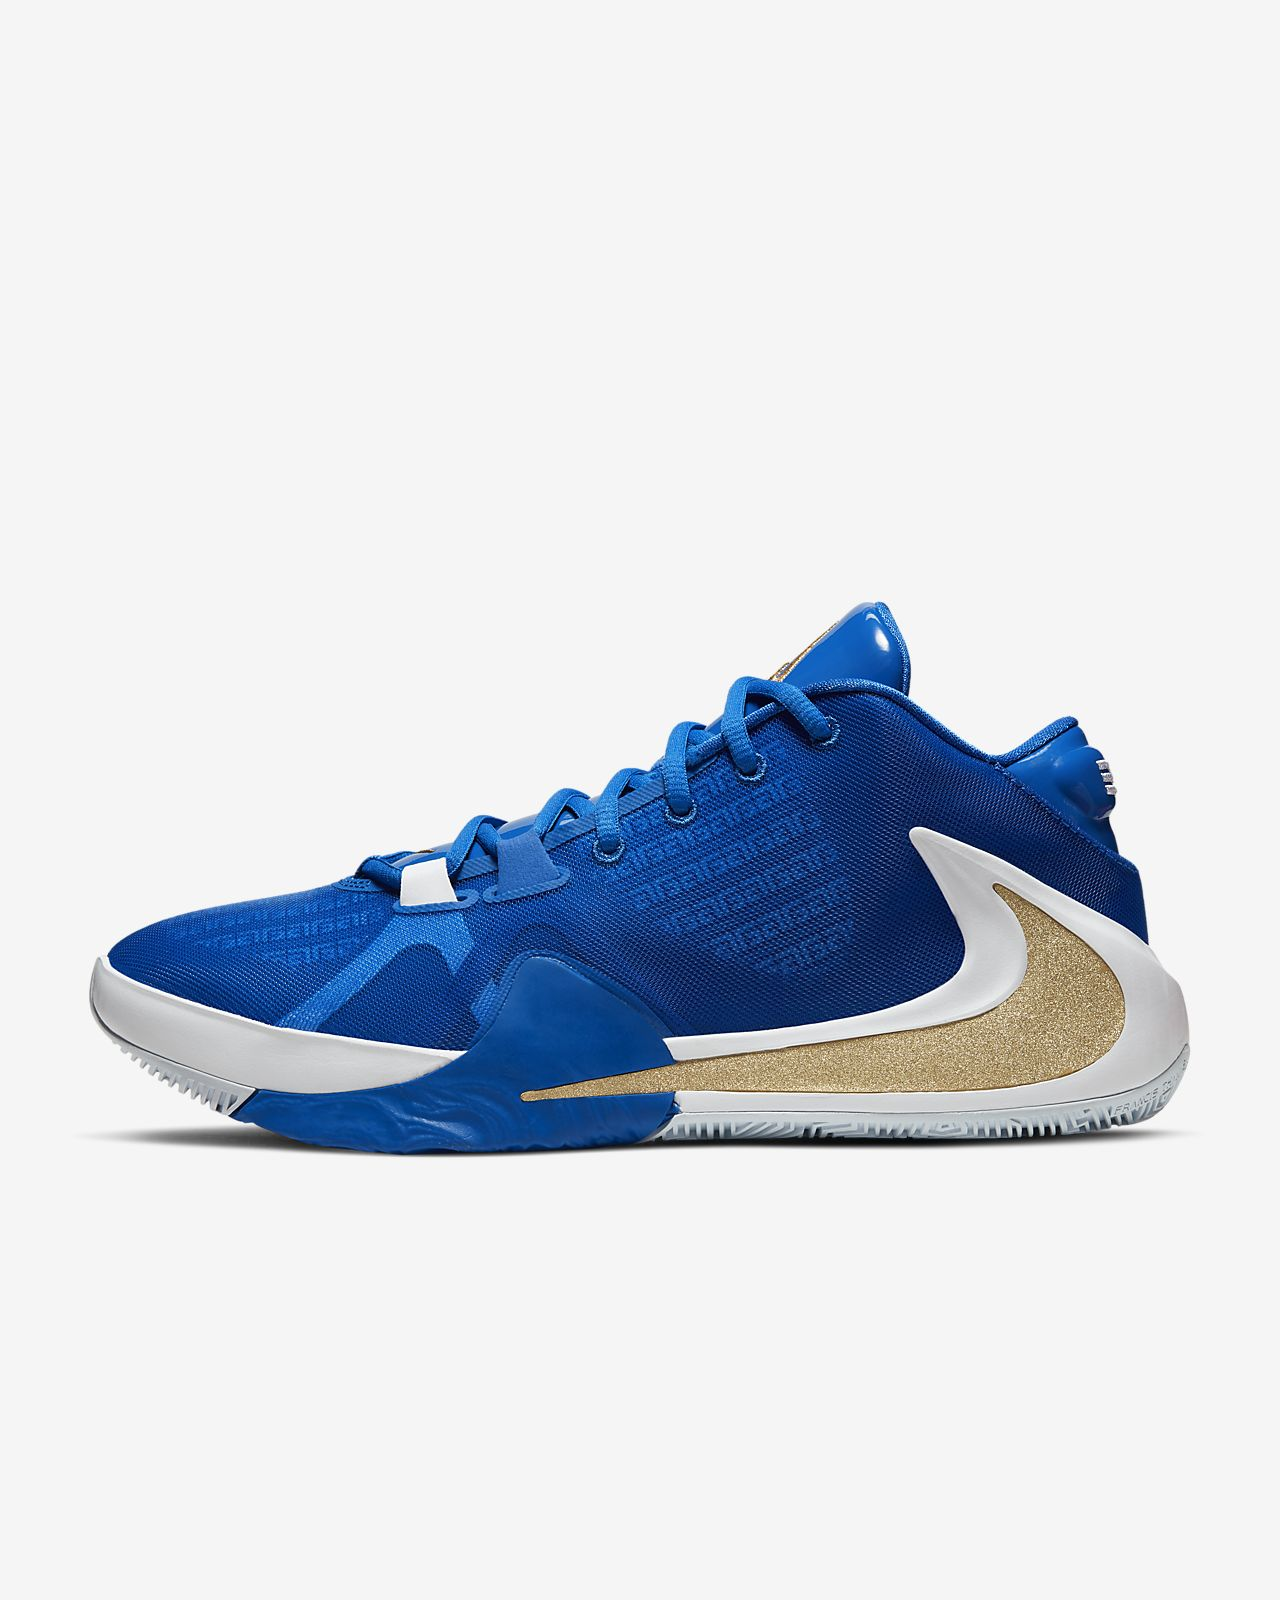 Chaussure de basketball Zoom Freak 1